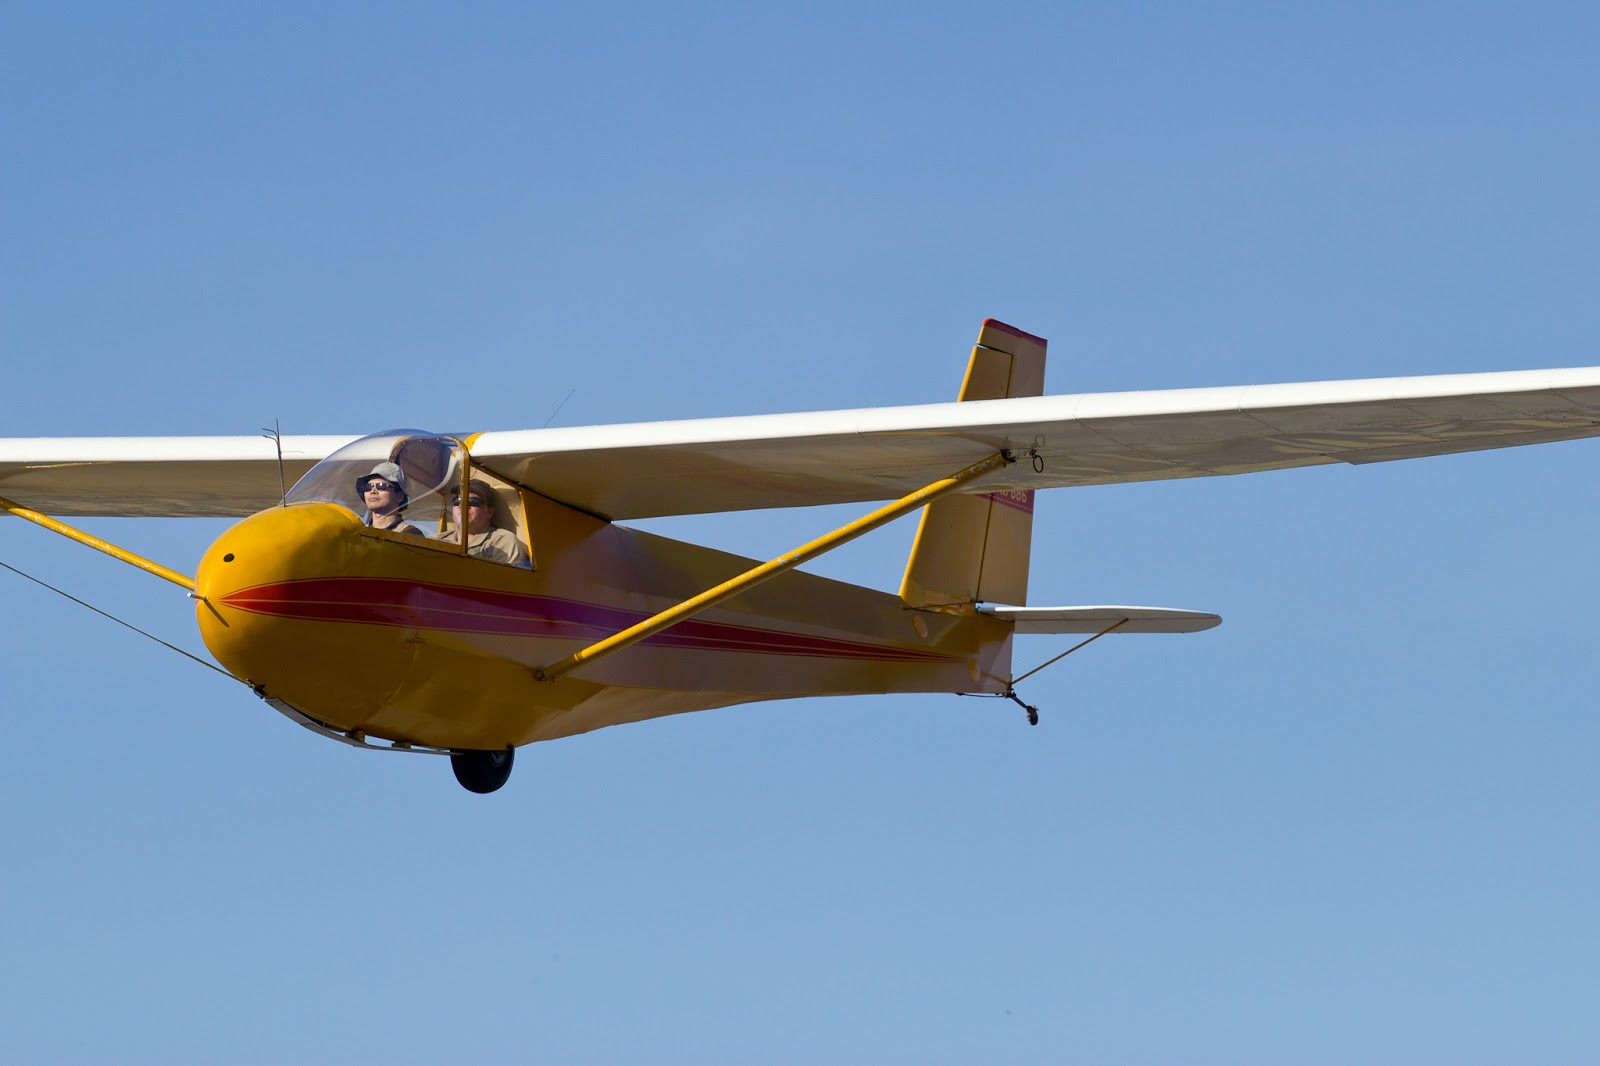 Glider at Randall Airport in Middletown, N.Y.